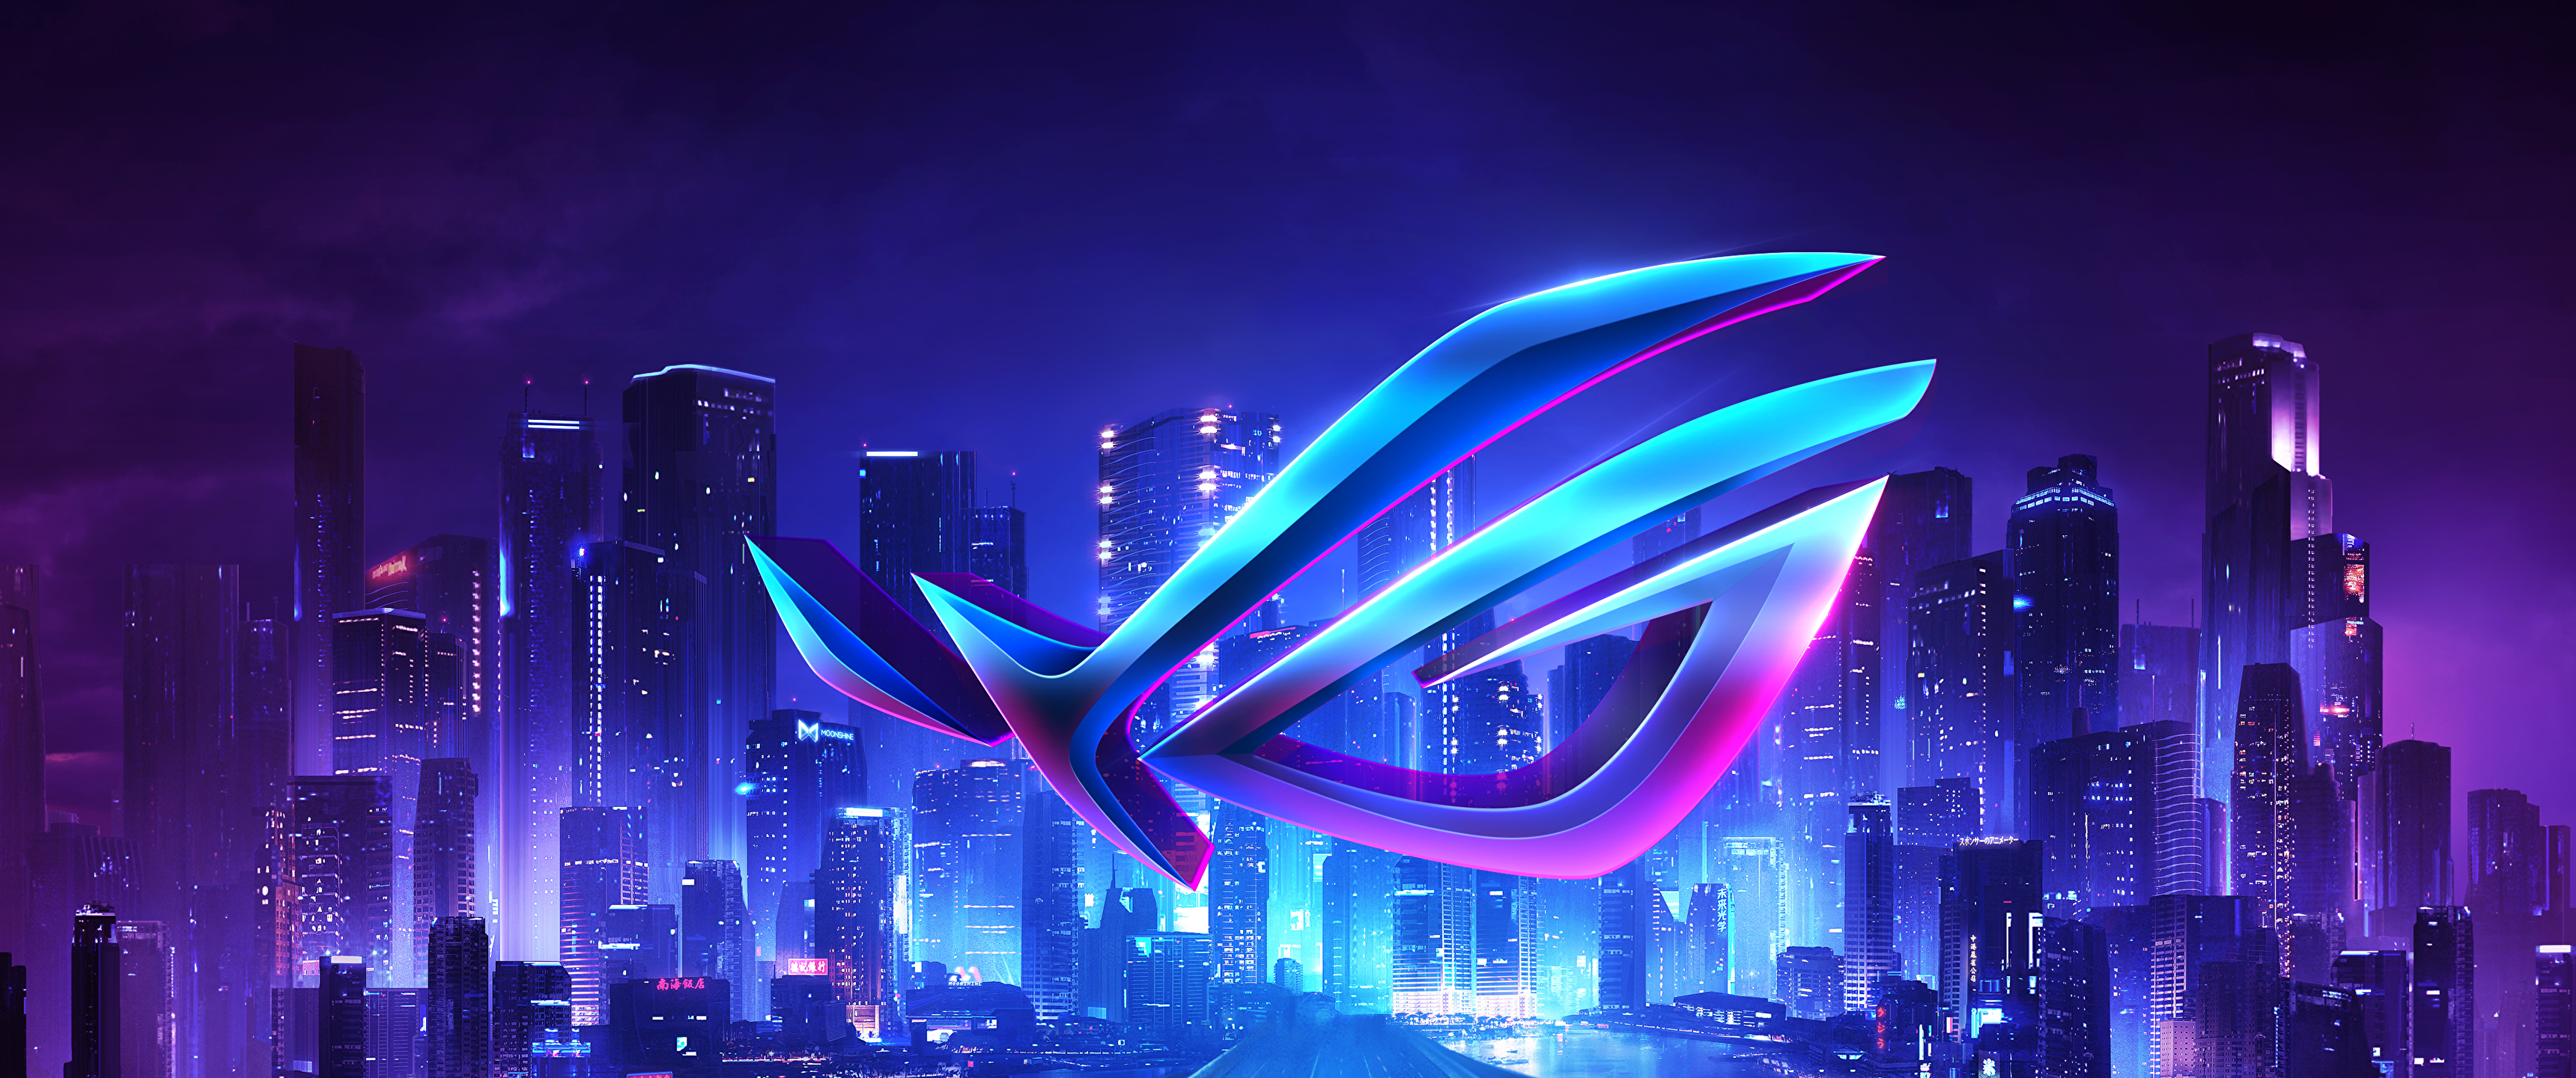 Asus ROG Cyberscape [3840x2160] : wallpapers